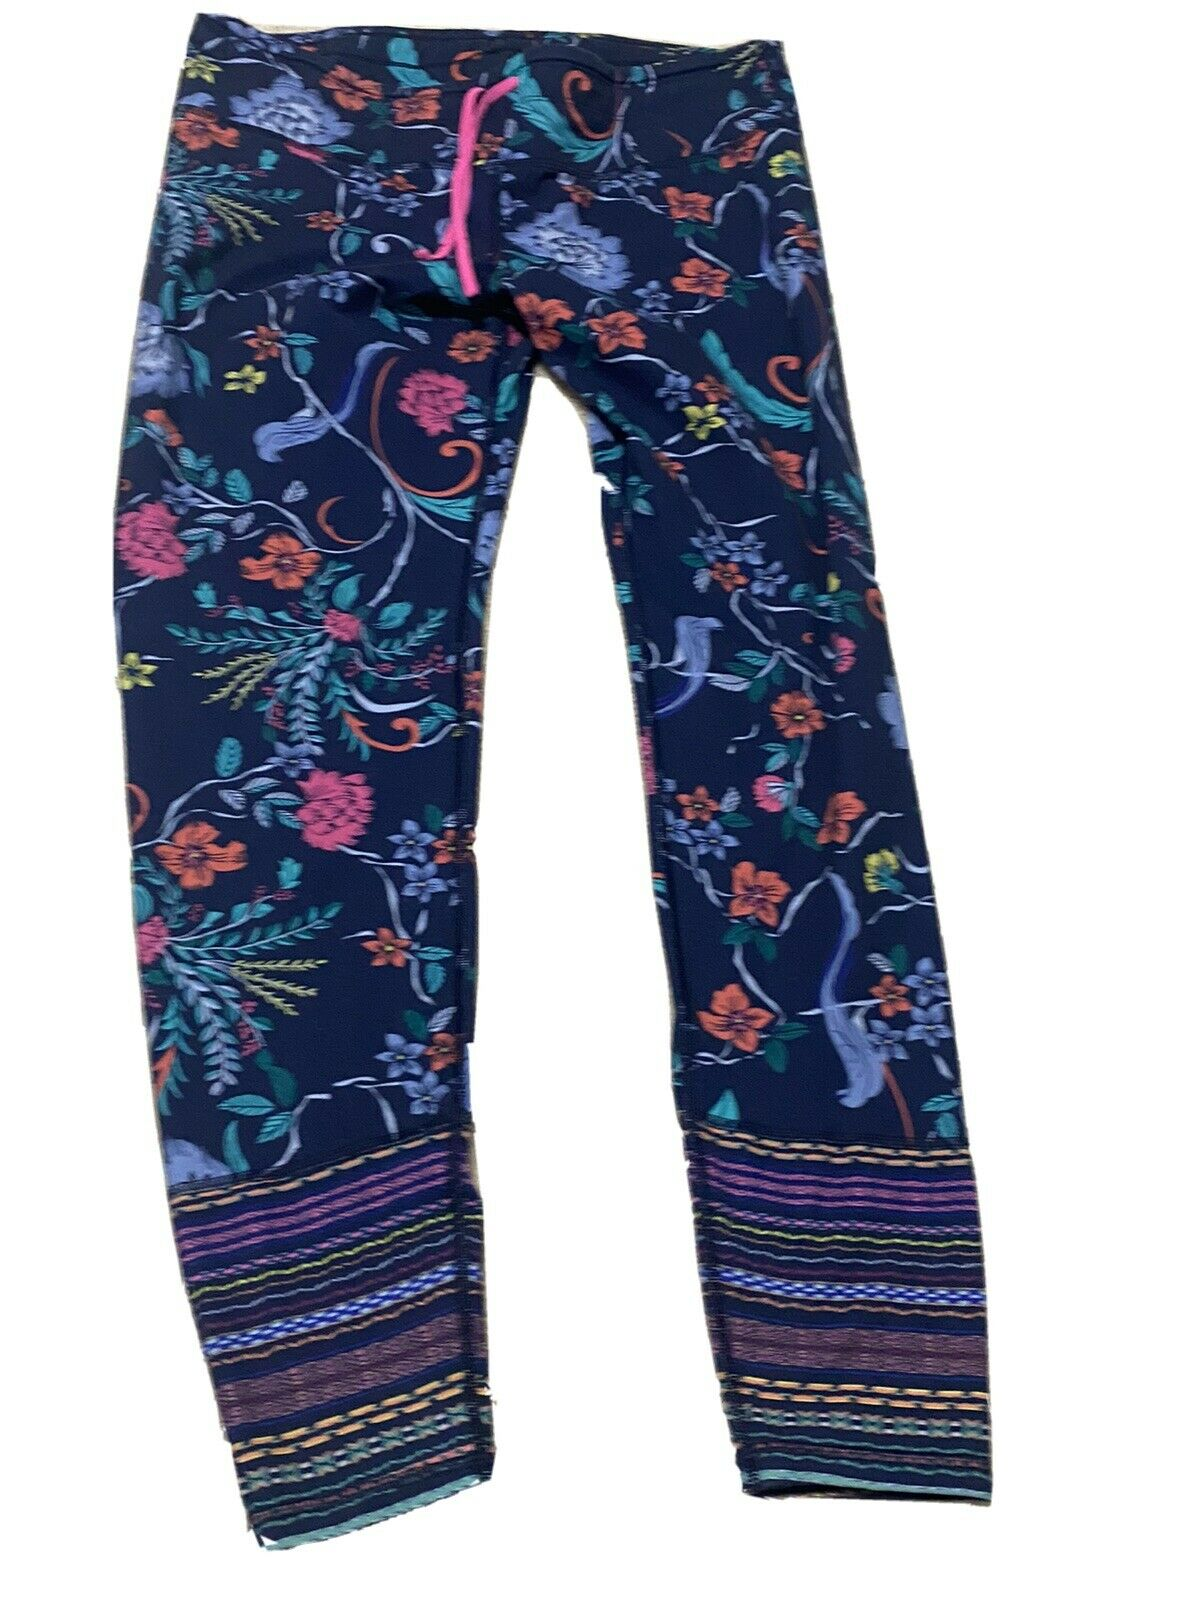 Old Navy Active Go Dry Fitted Floral Workout Pants XL